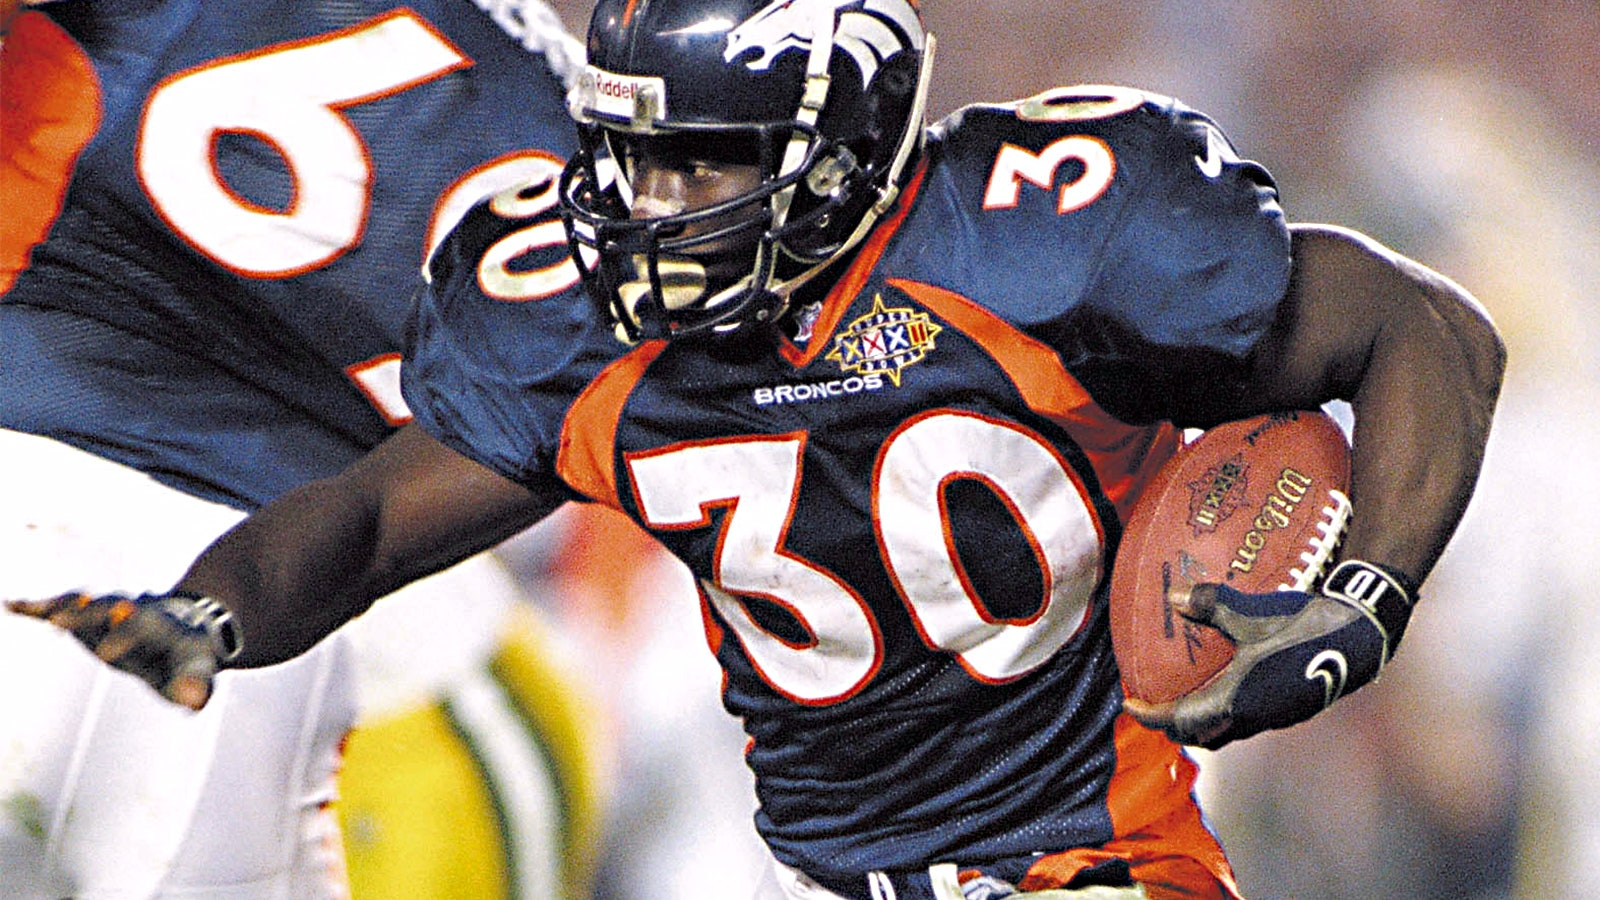 online store fdc92 9e378 My Big Game Moment: Terrell Davis dealt with his pain | FOX ...